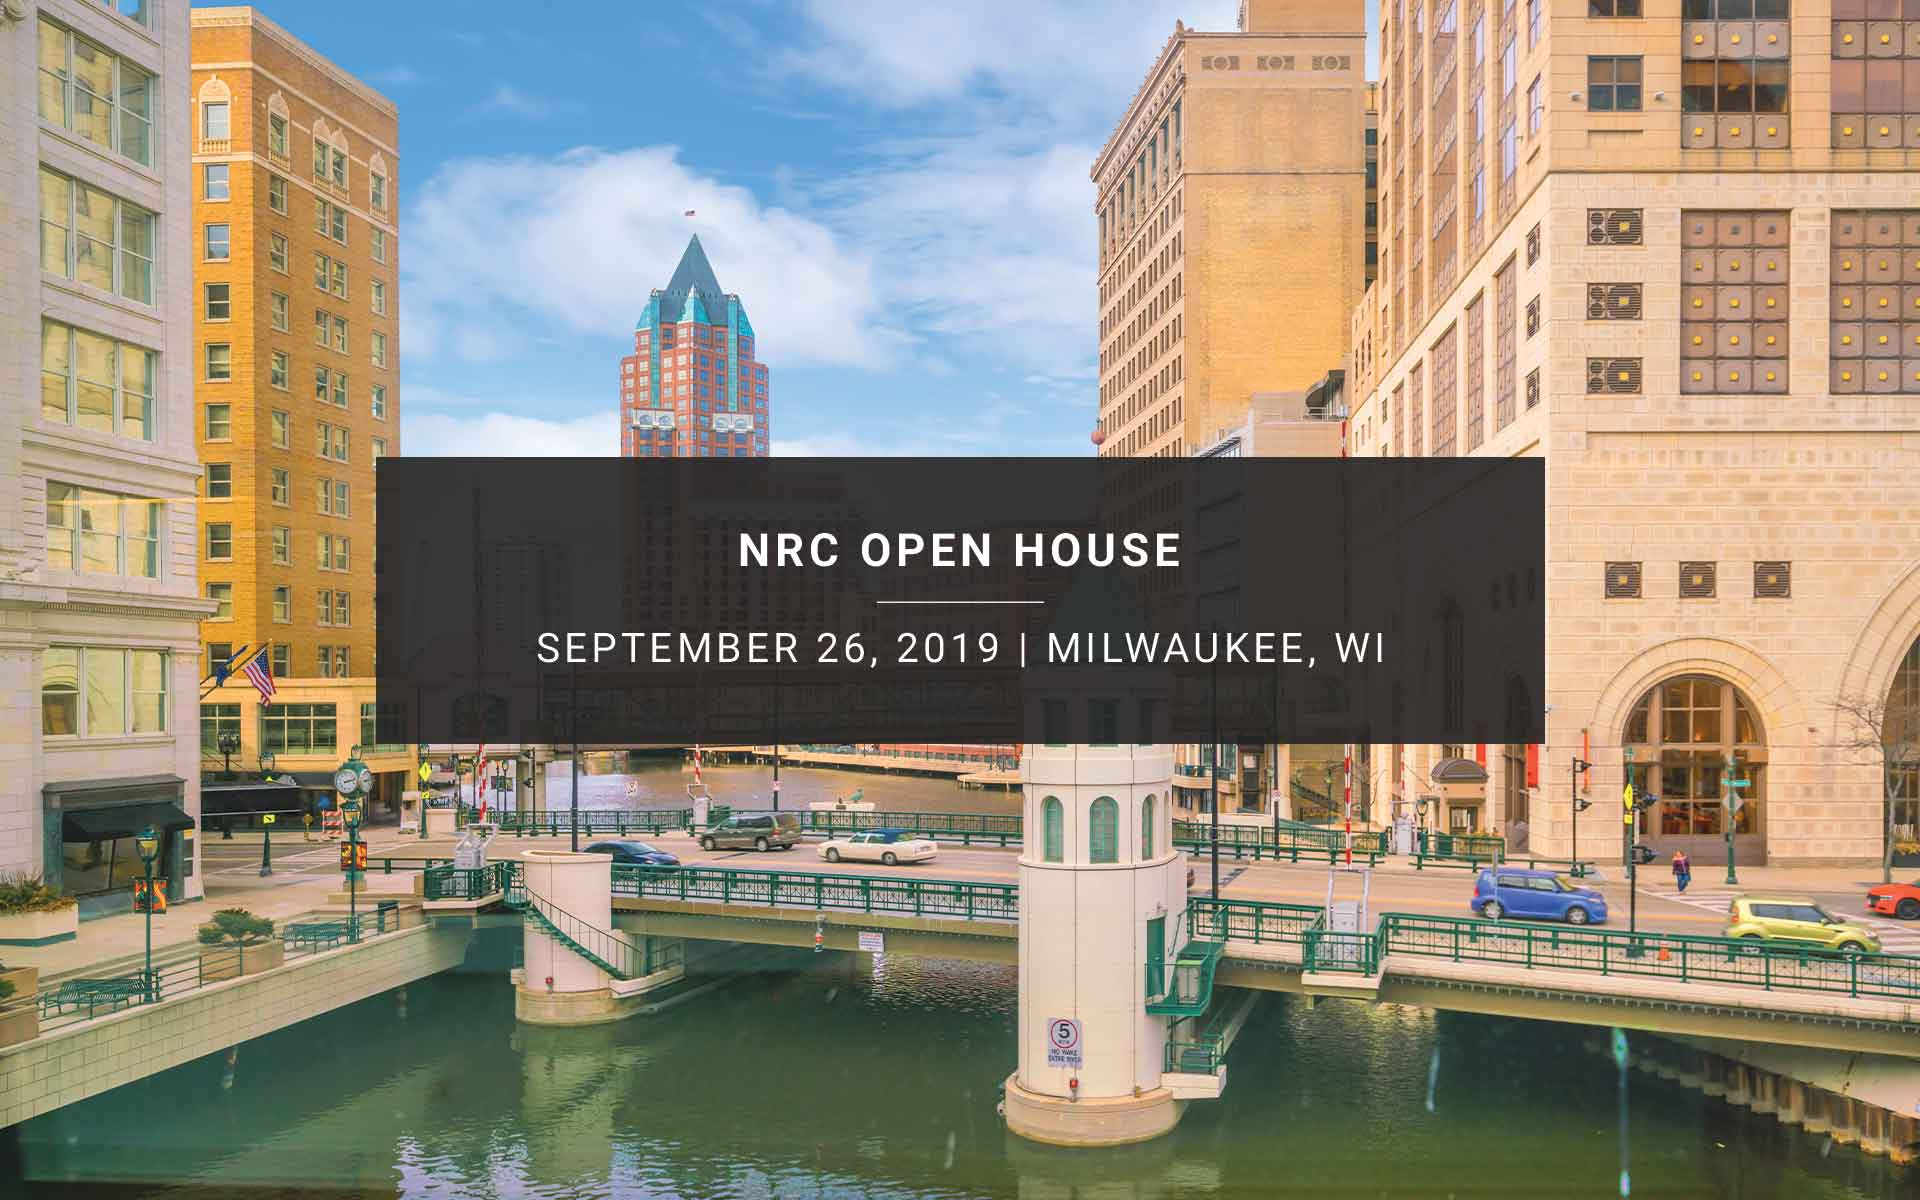 NRC Open House New Resources COnsulting